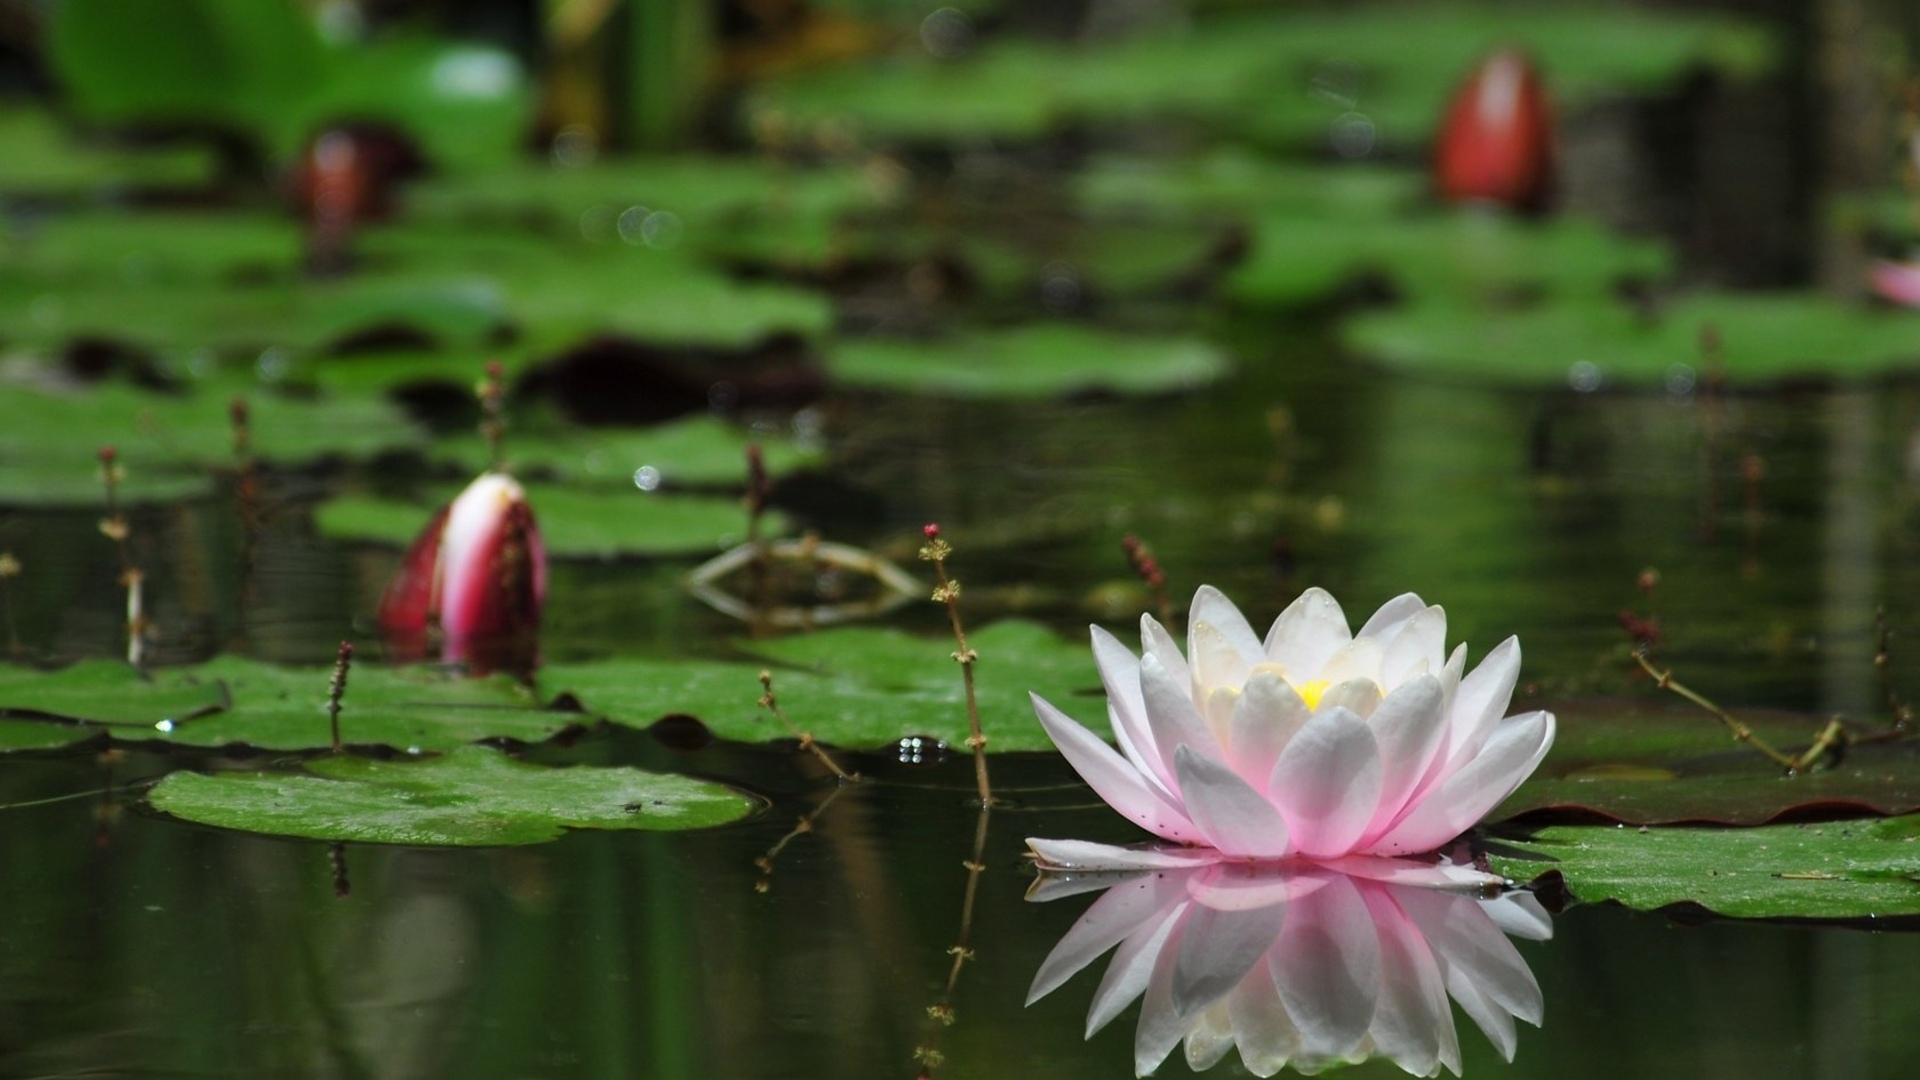 water lilies Texas water lilies is your main source for all your aquatic plants growing needs we have water lilies ranging from lotus, marginals, tropical water lilies and hardy water lilies, all under one roof, texas water lilies.